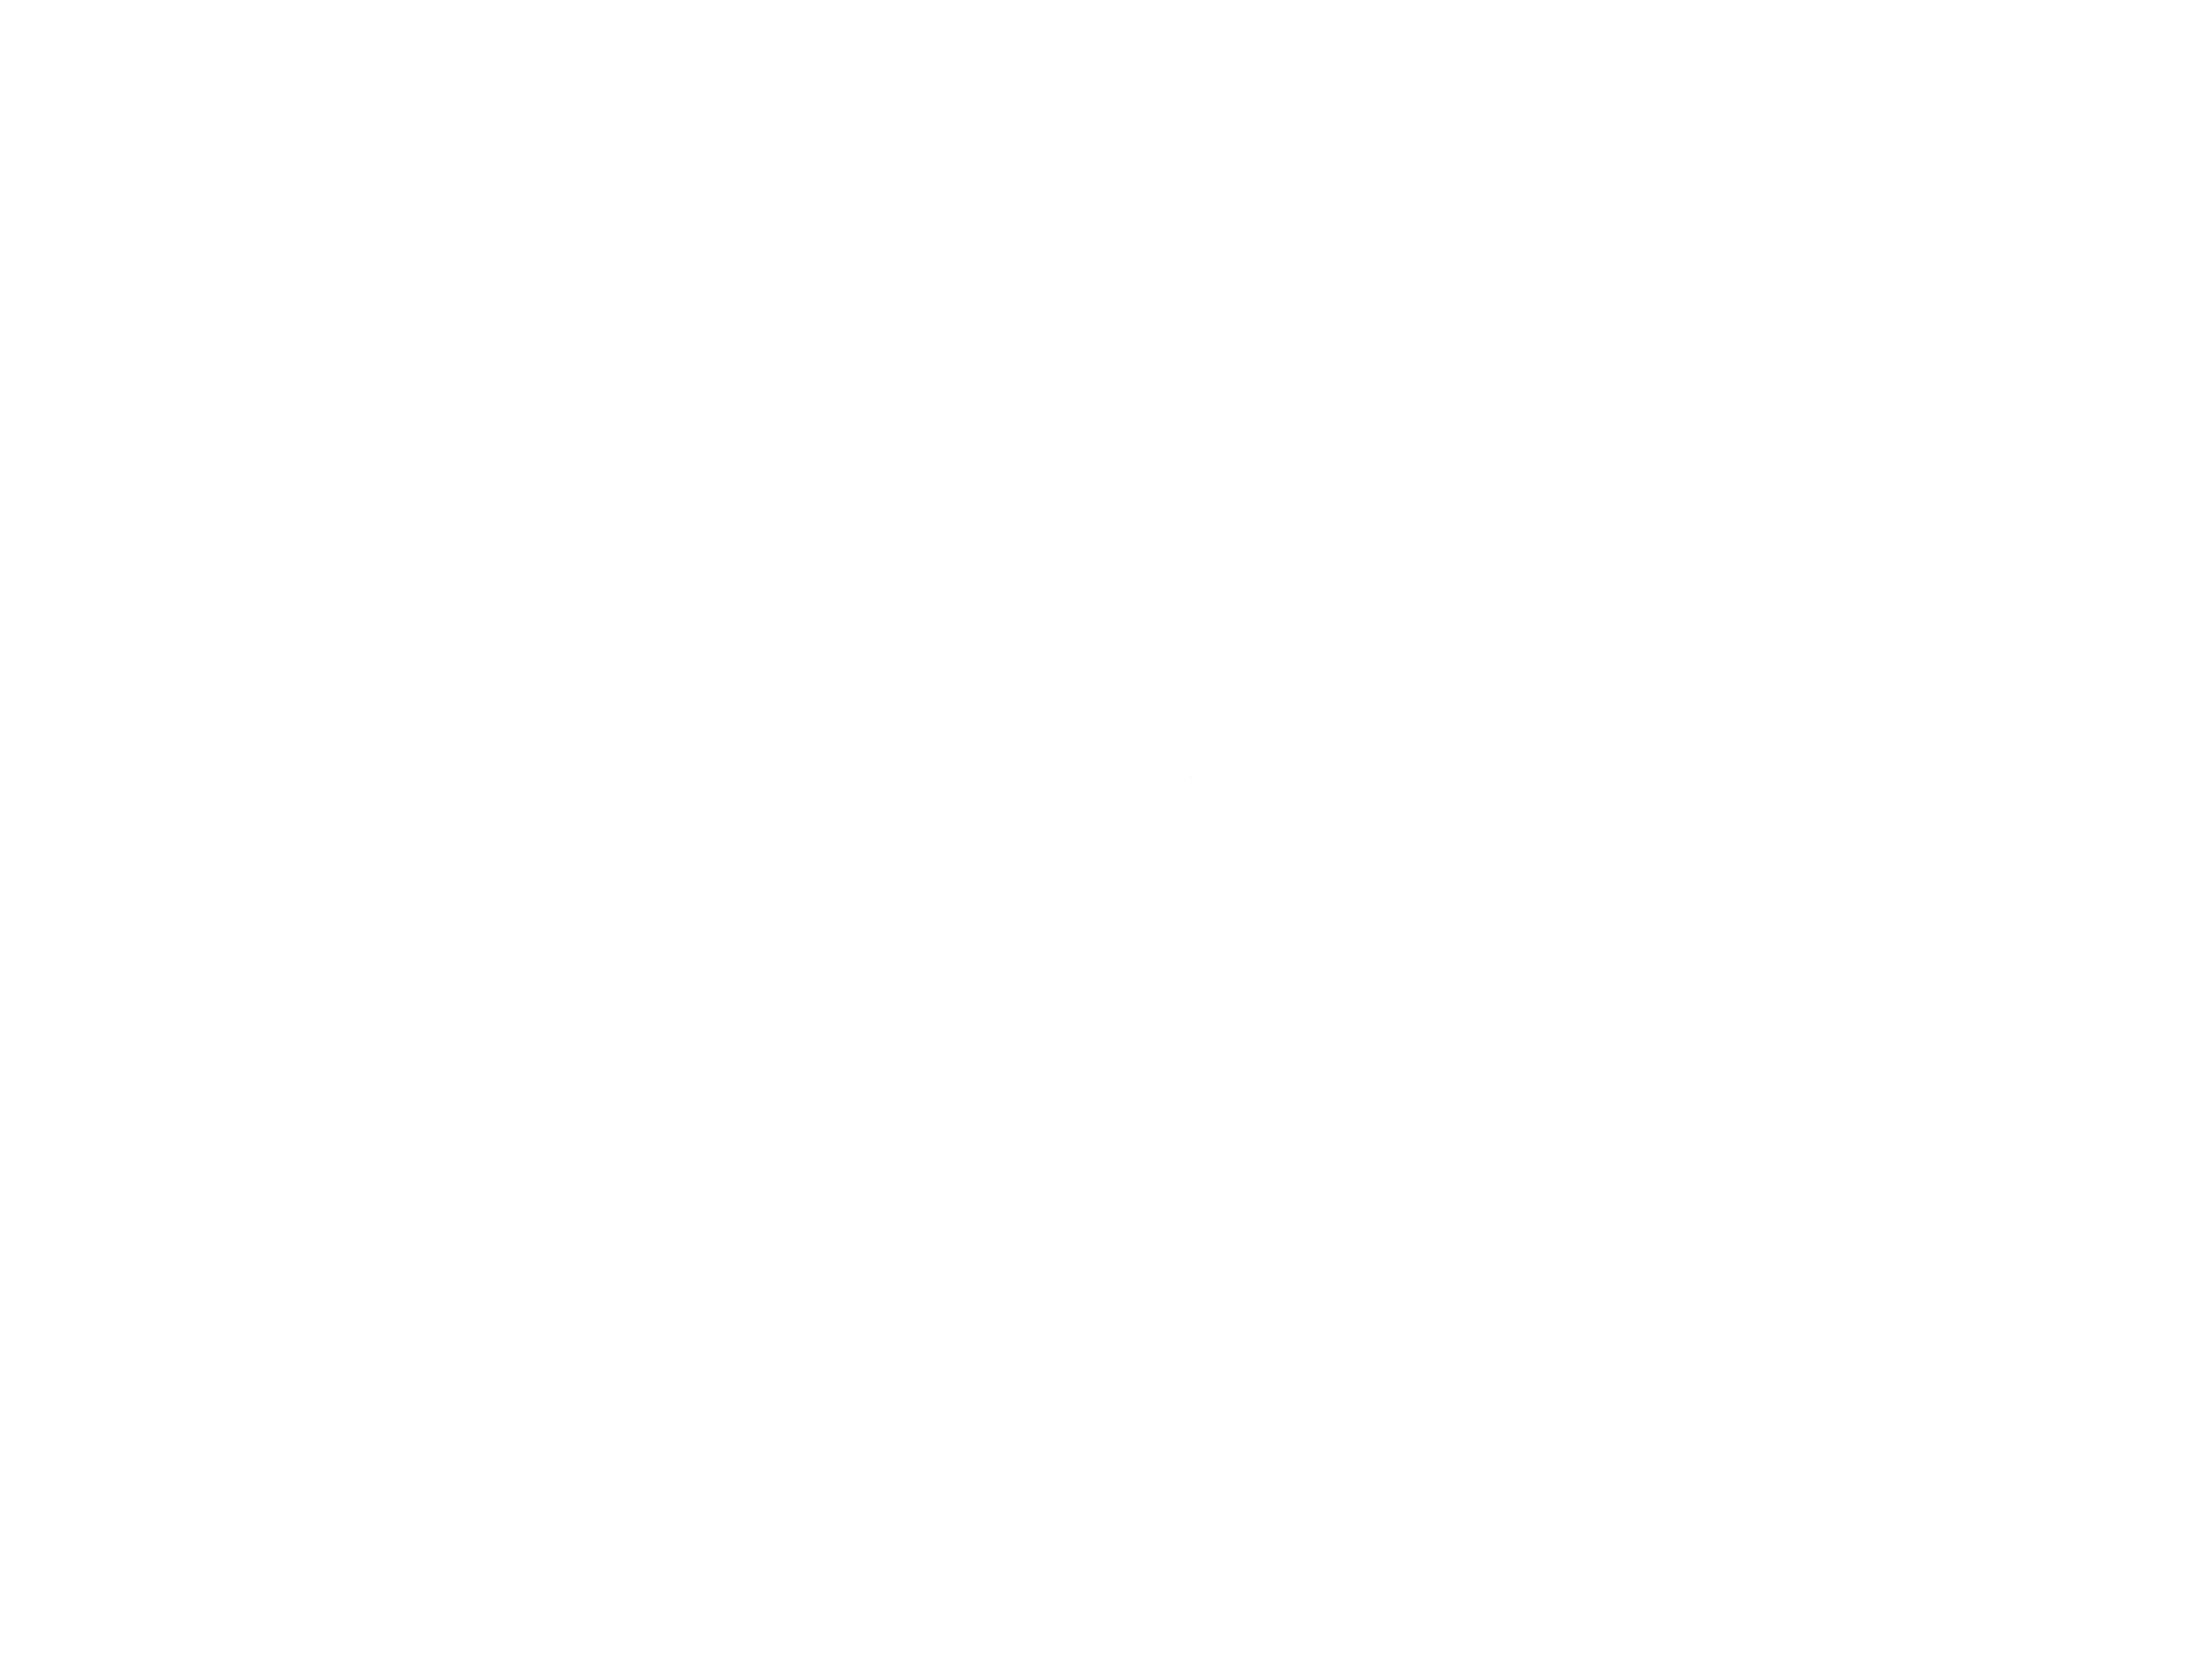 All caps serif font with fishhook centered logo of Garrison restaurant